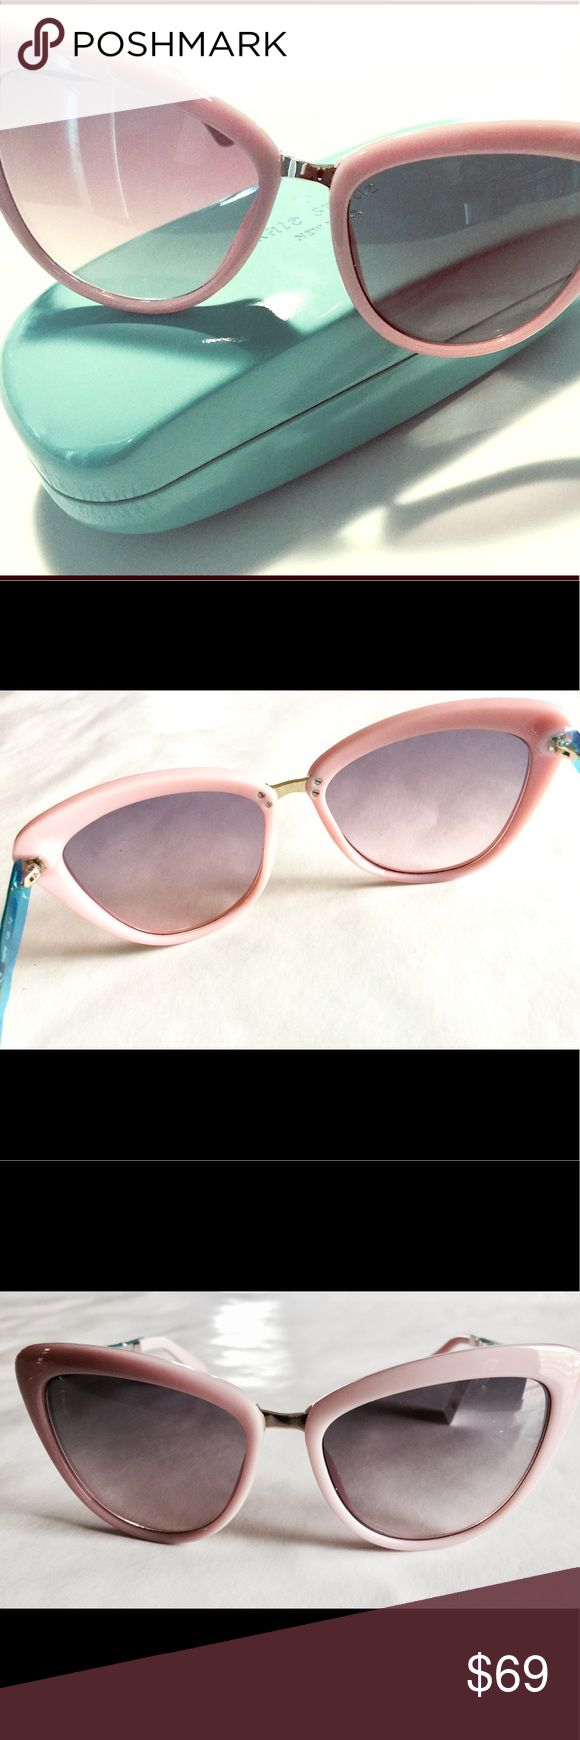 NEW Kate Spade Cat Eye (Cissy) Sunglasses NWT Brand new ✨ Kate Spade Cissy cat eye frames. Frames are the popular light pink or blush color with gold tone side arms and bridge. Great accessory to complete your spring and summer styles. Never worn, still in packaging with protective film on arms, tags, and original tiffany blue case. Smoke free and pet free home. ✨Happy to consider reasonable offers, so please don't hesitate to make an offer.✨ Note, color may vary due to screen resolutions…